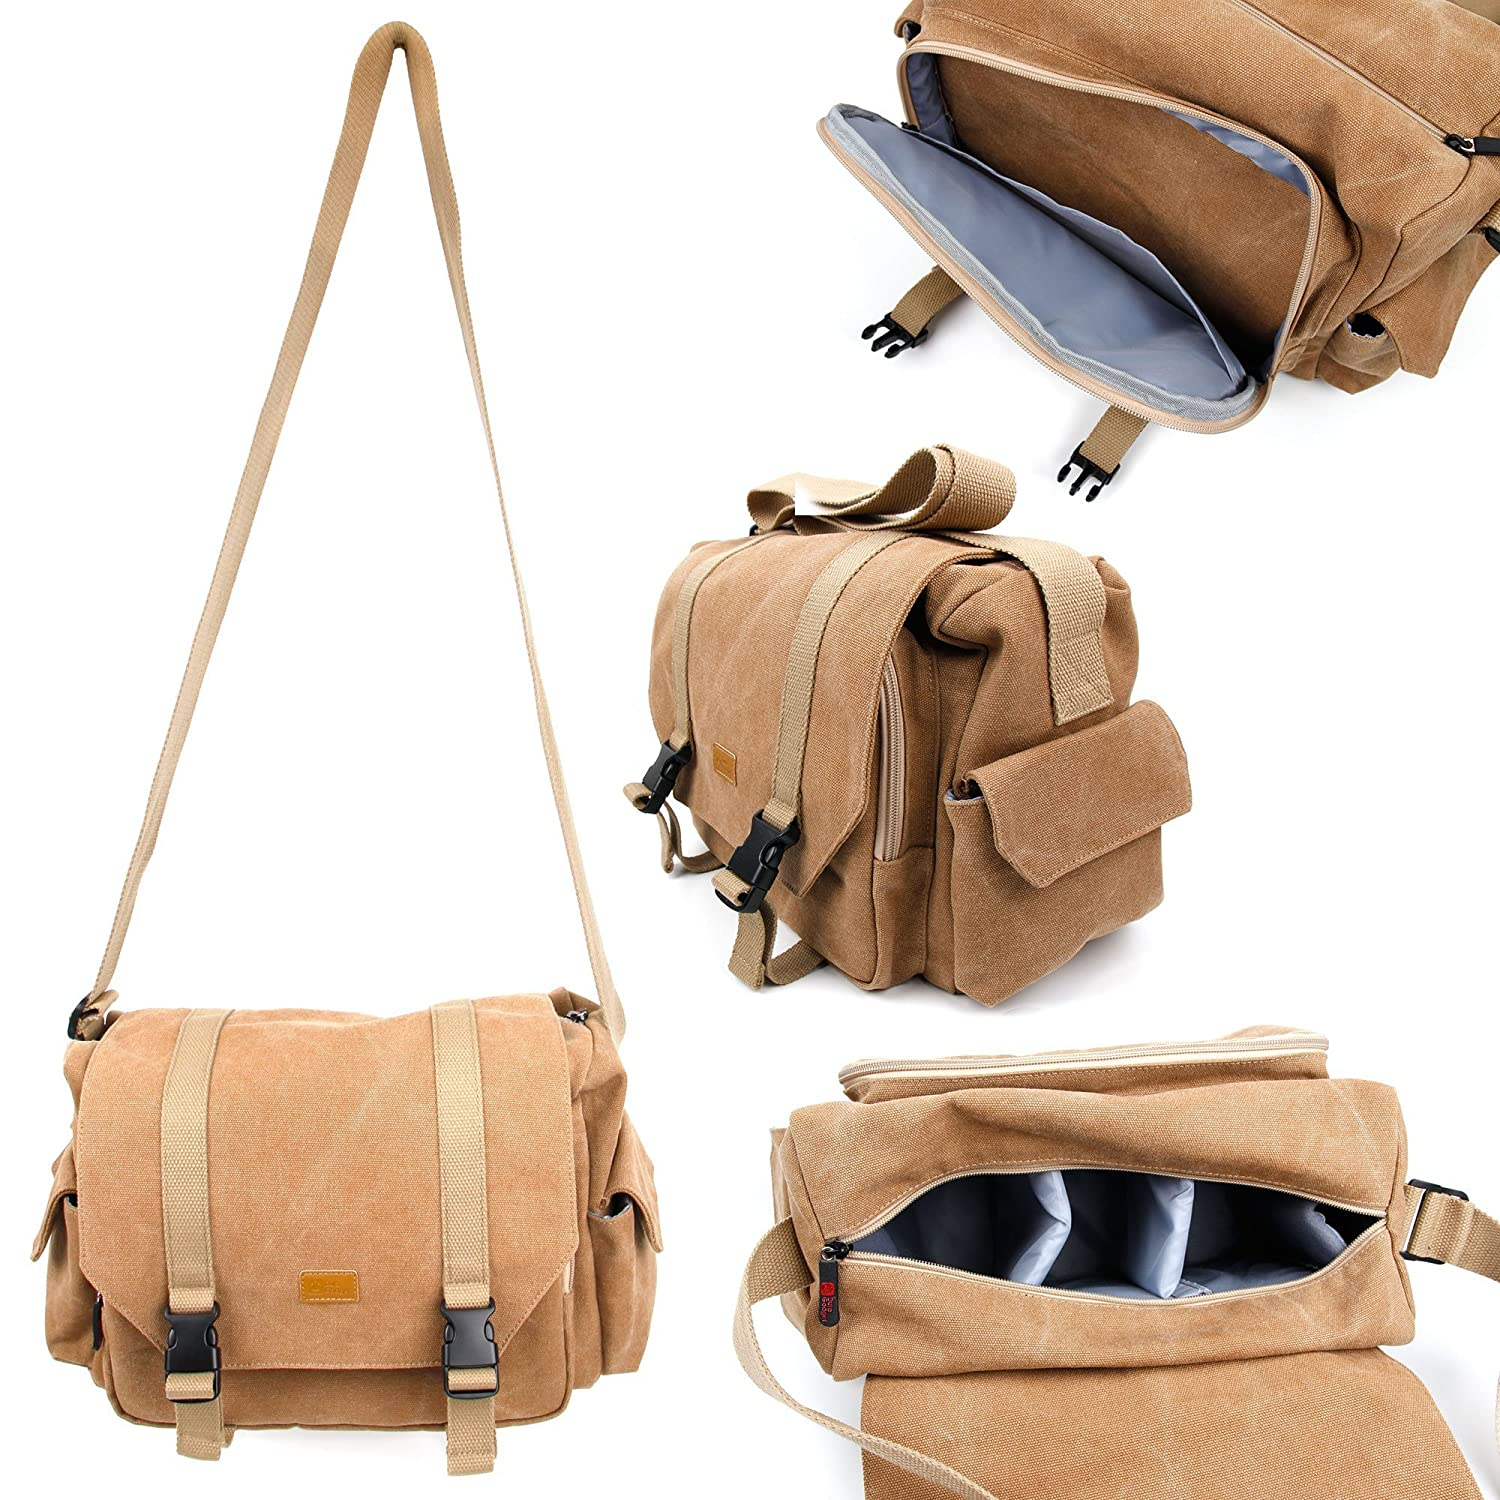 Amazon.com: Tan-Brown Large Sized Canvas Carry Bag With Multiple ...